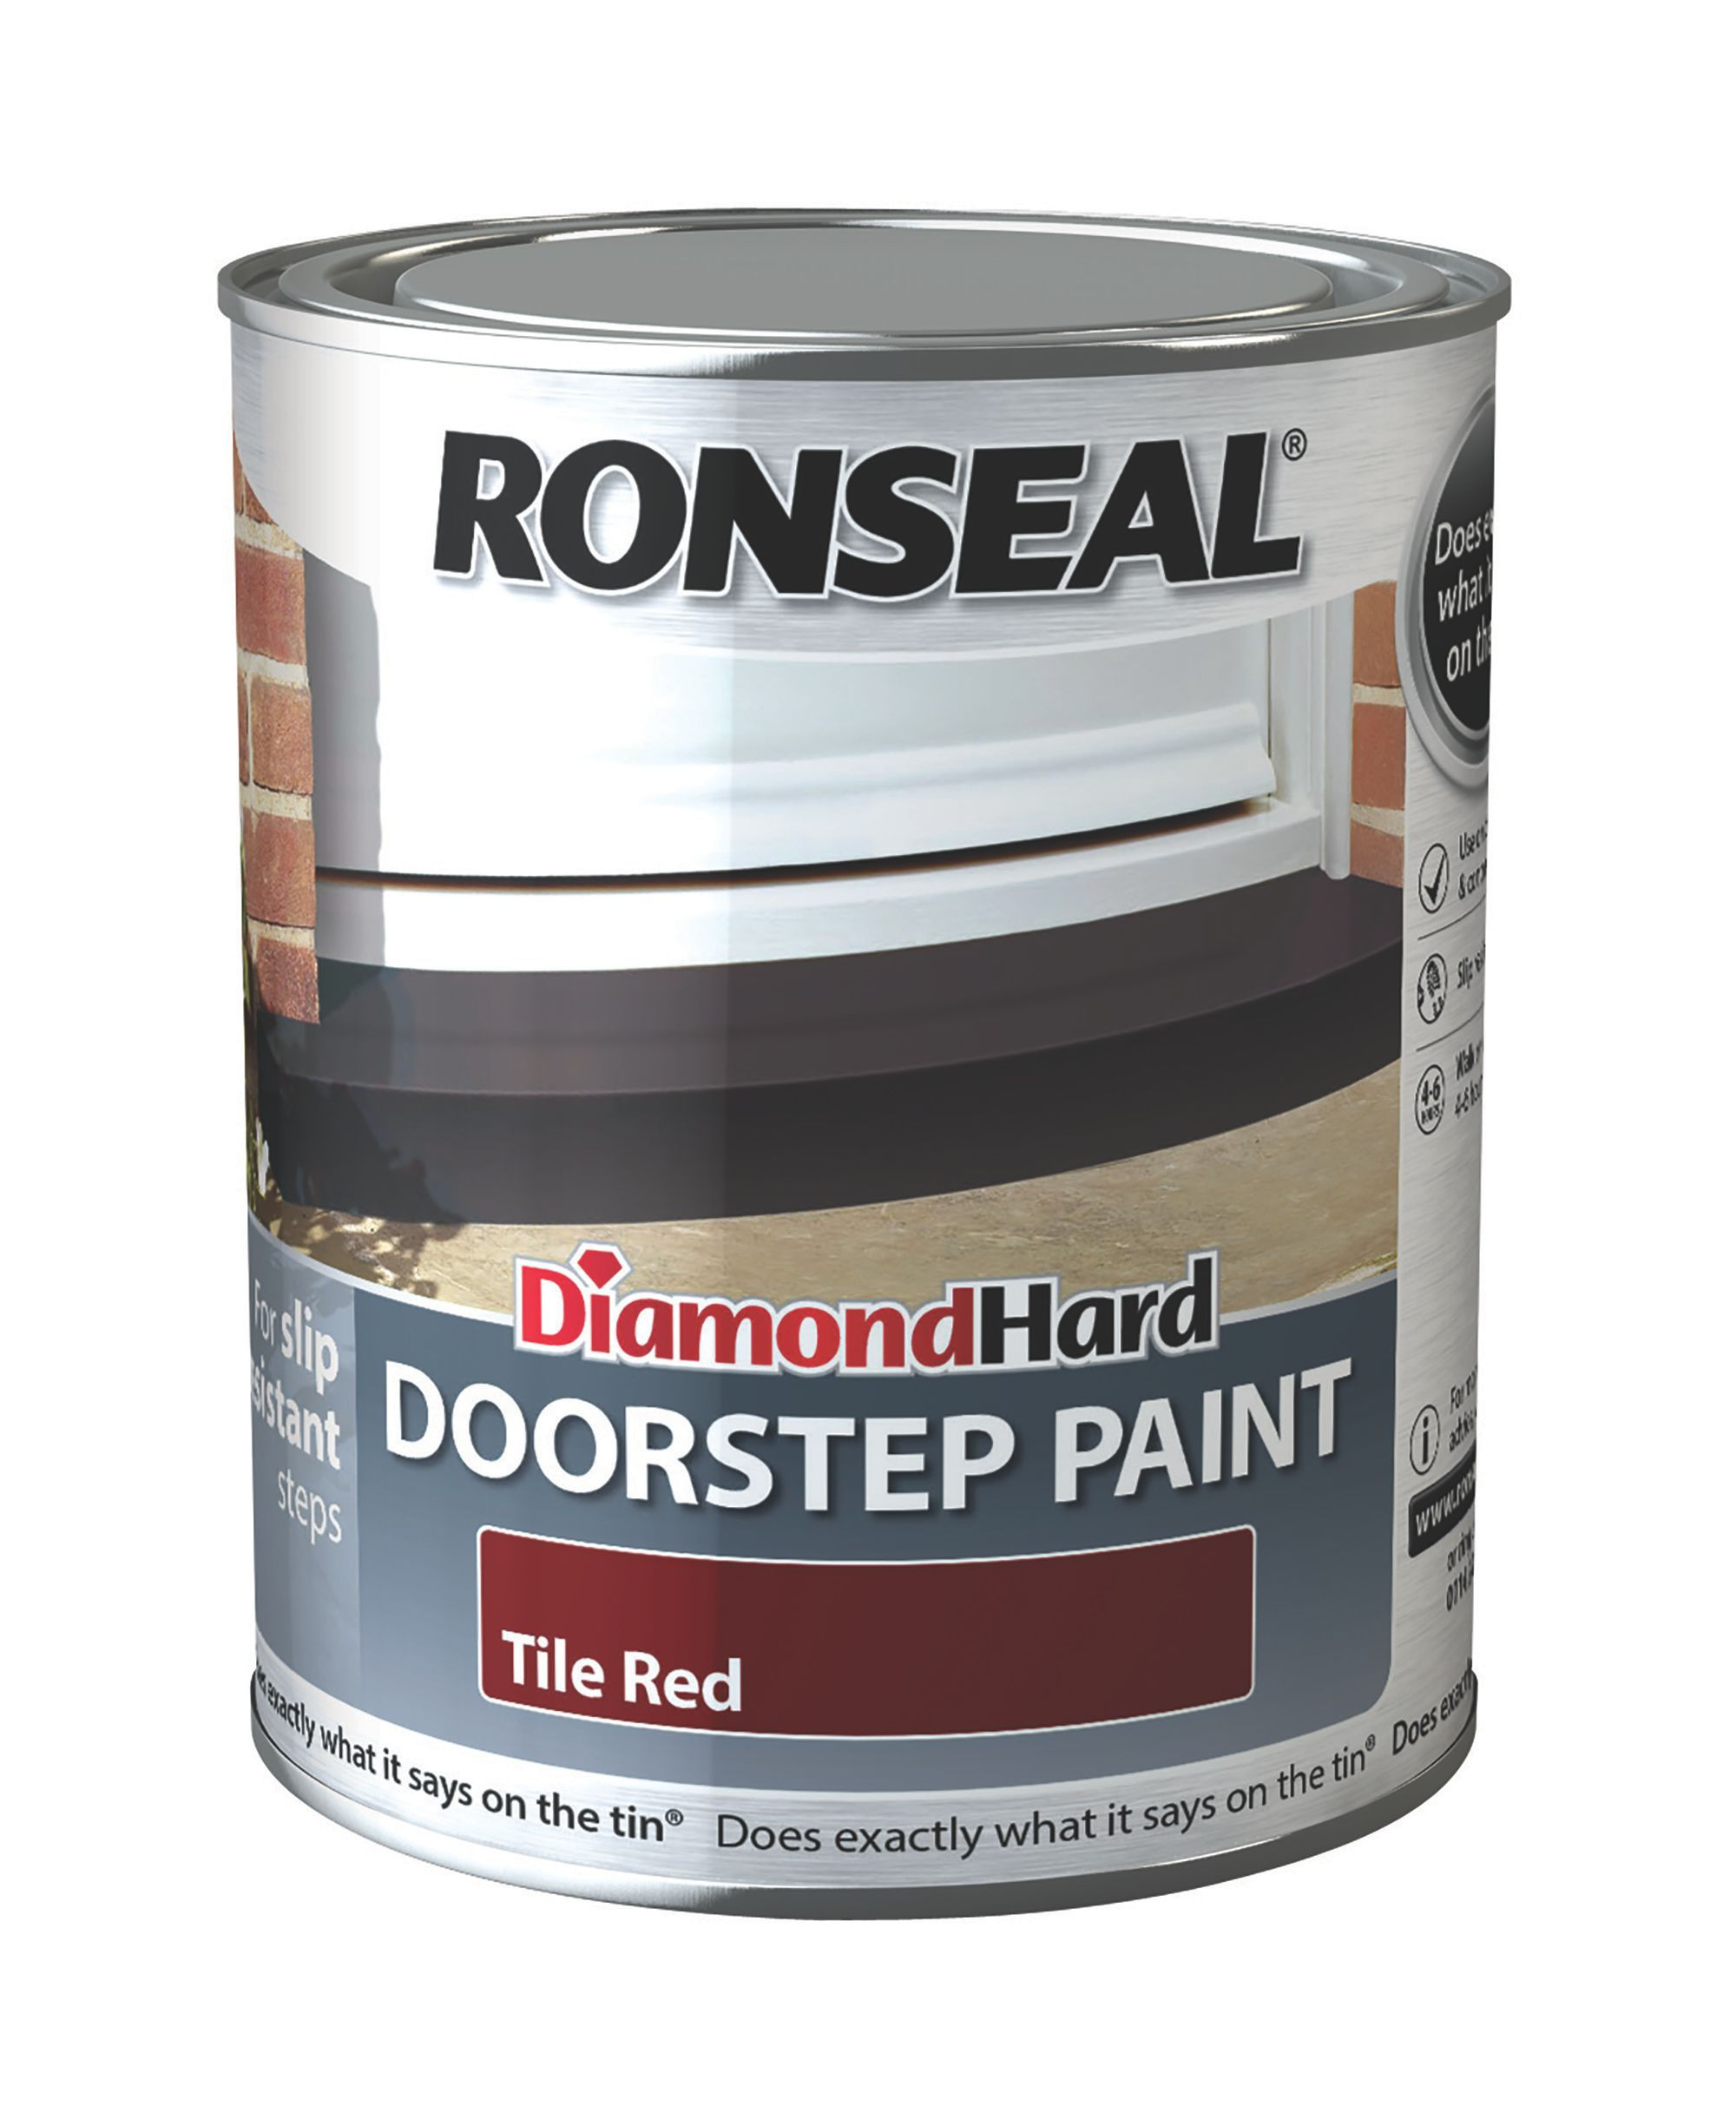 ronseal doorstep paint tile red satin doorstep paint0 75l